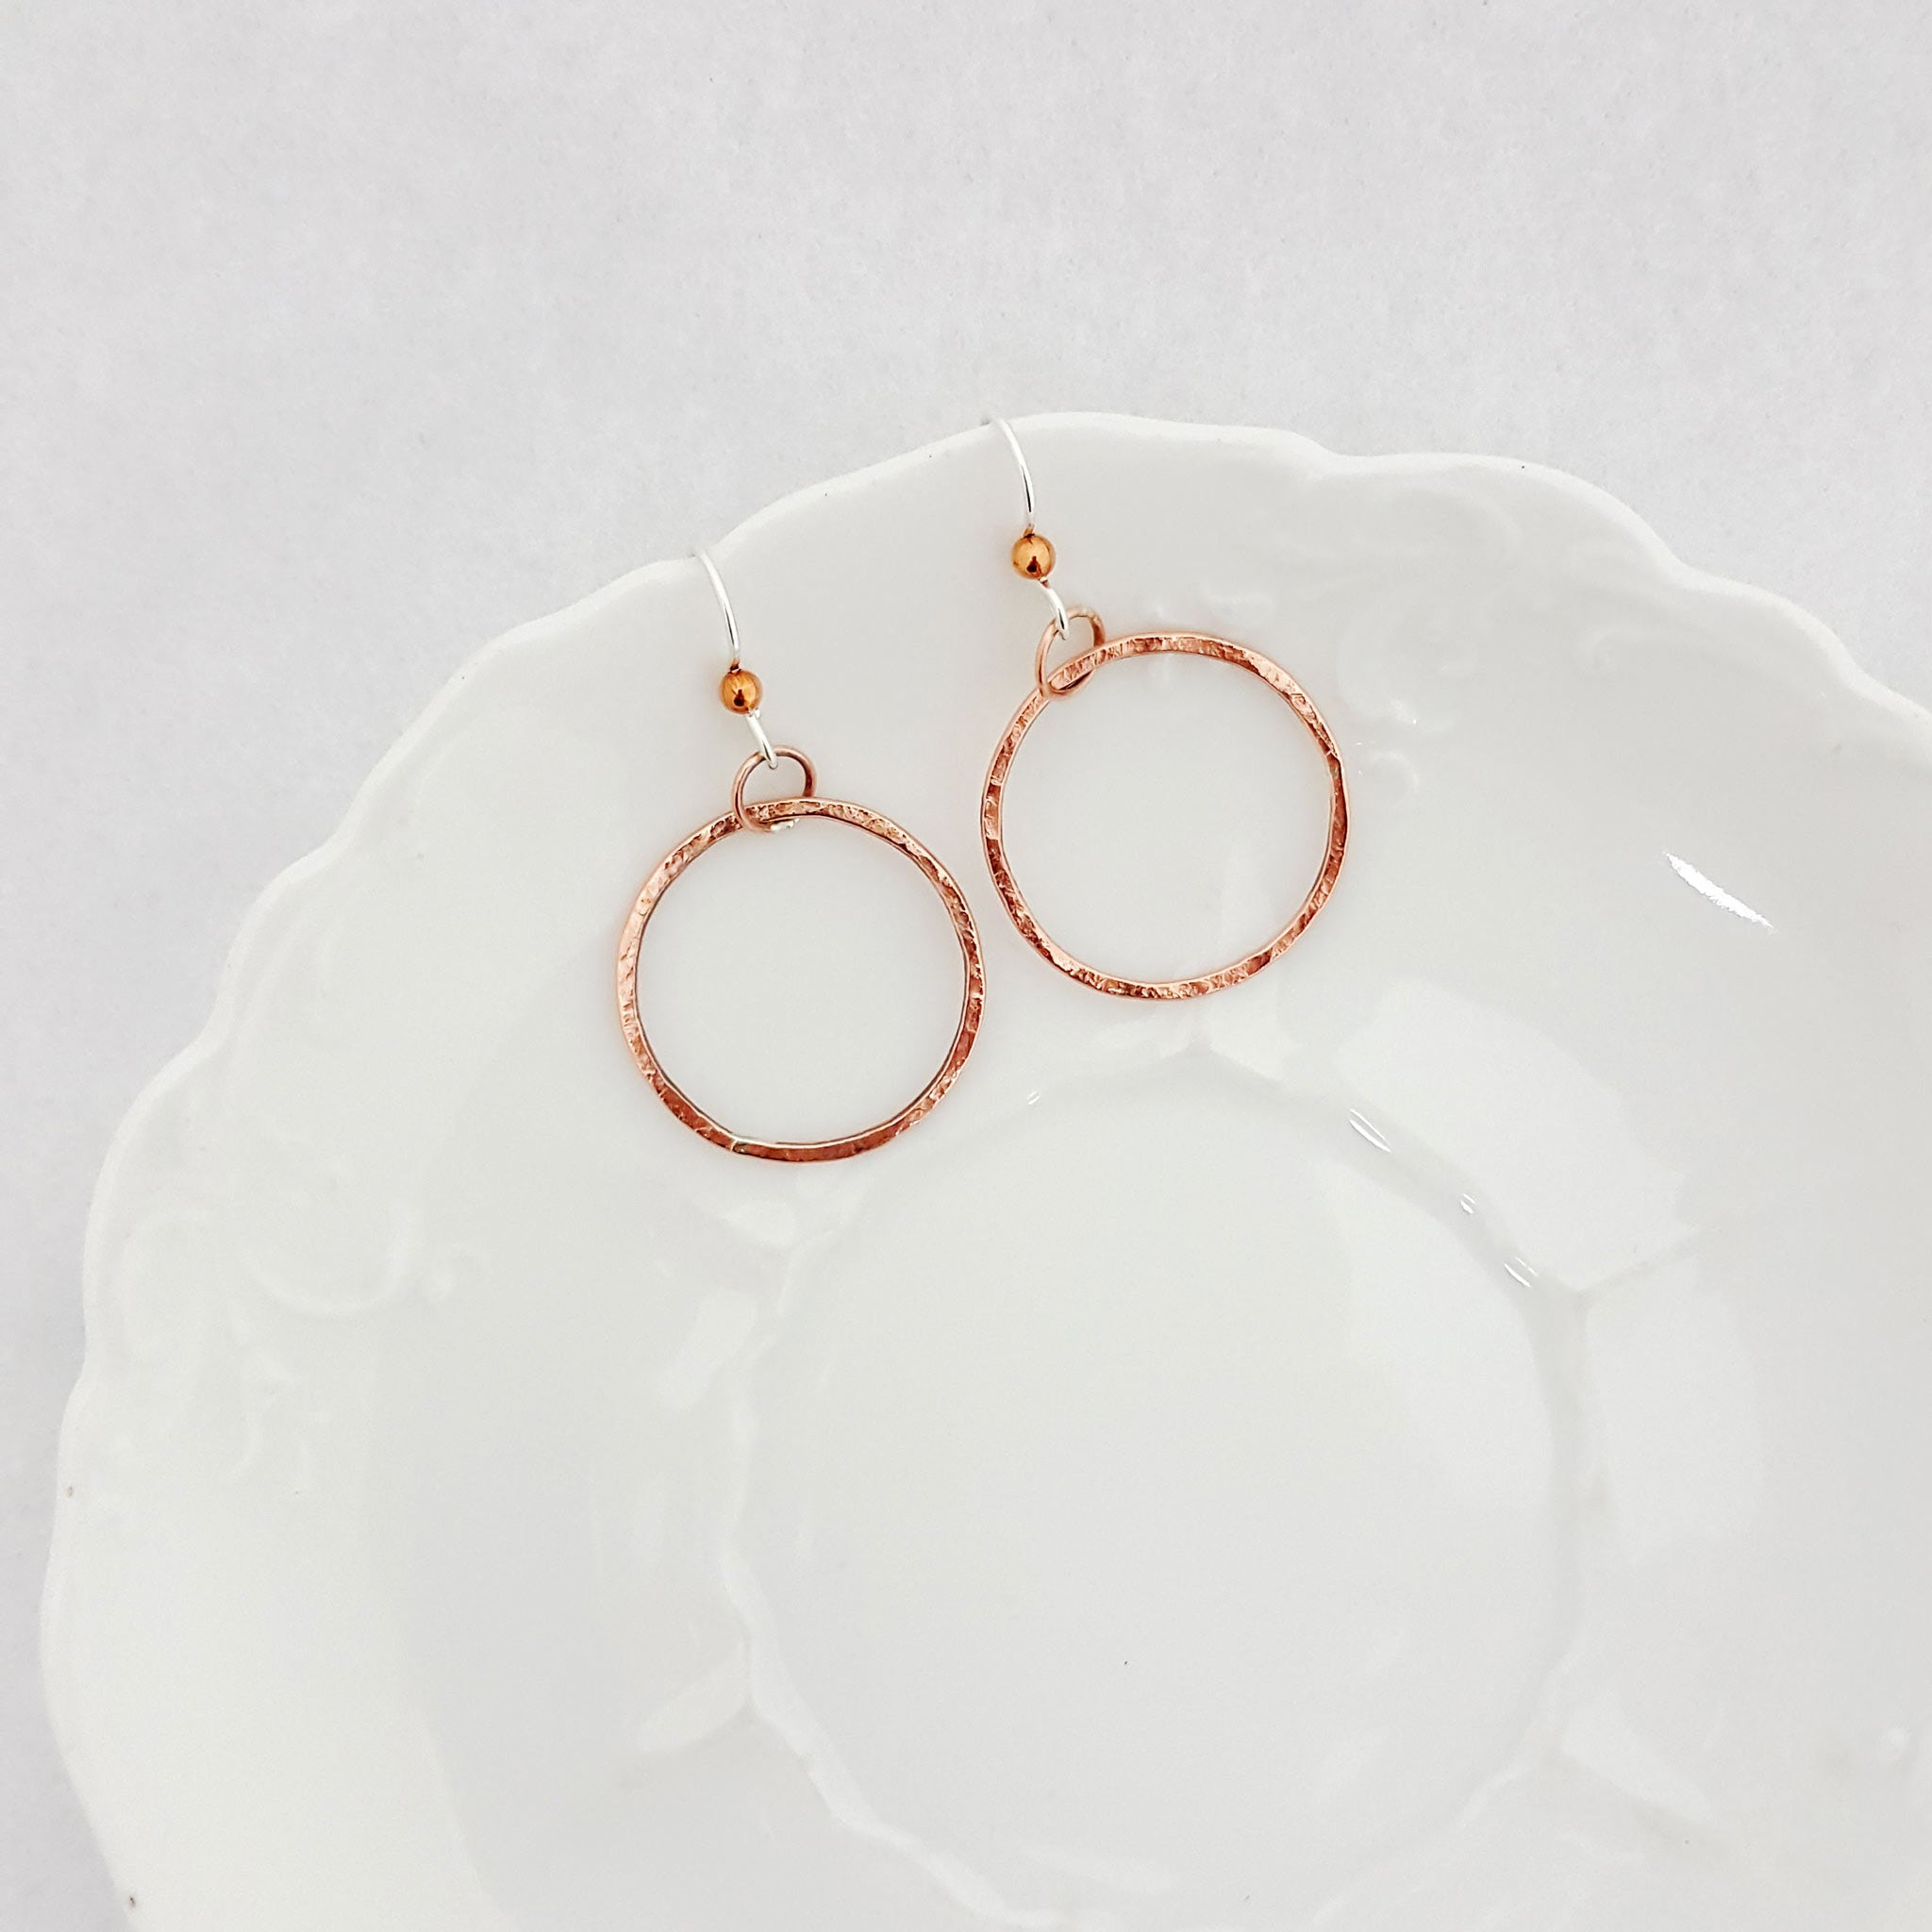 Classic Circle Earrings in Copper - Select Size